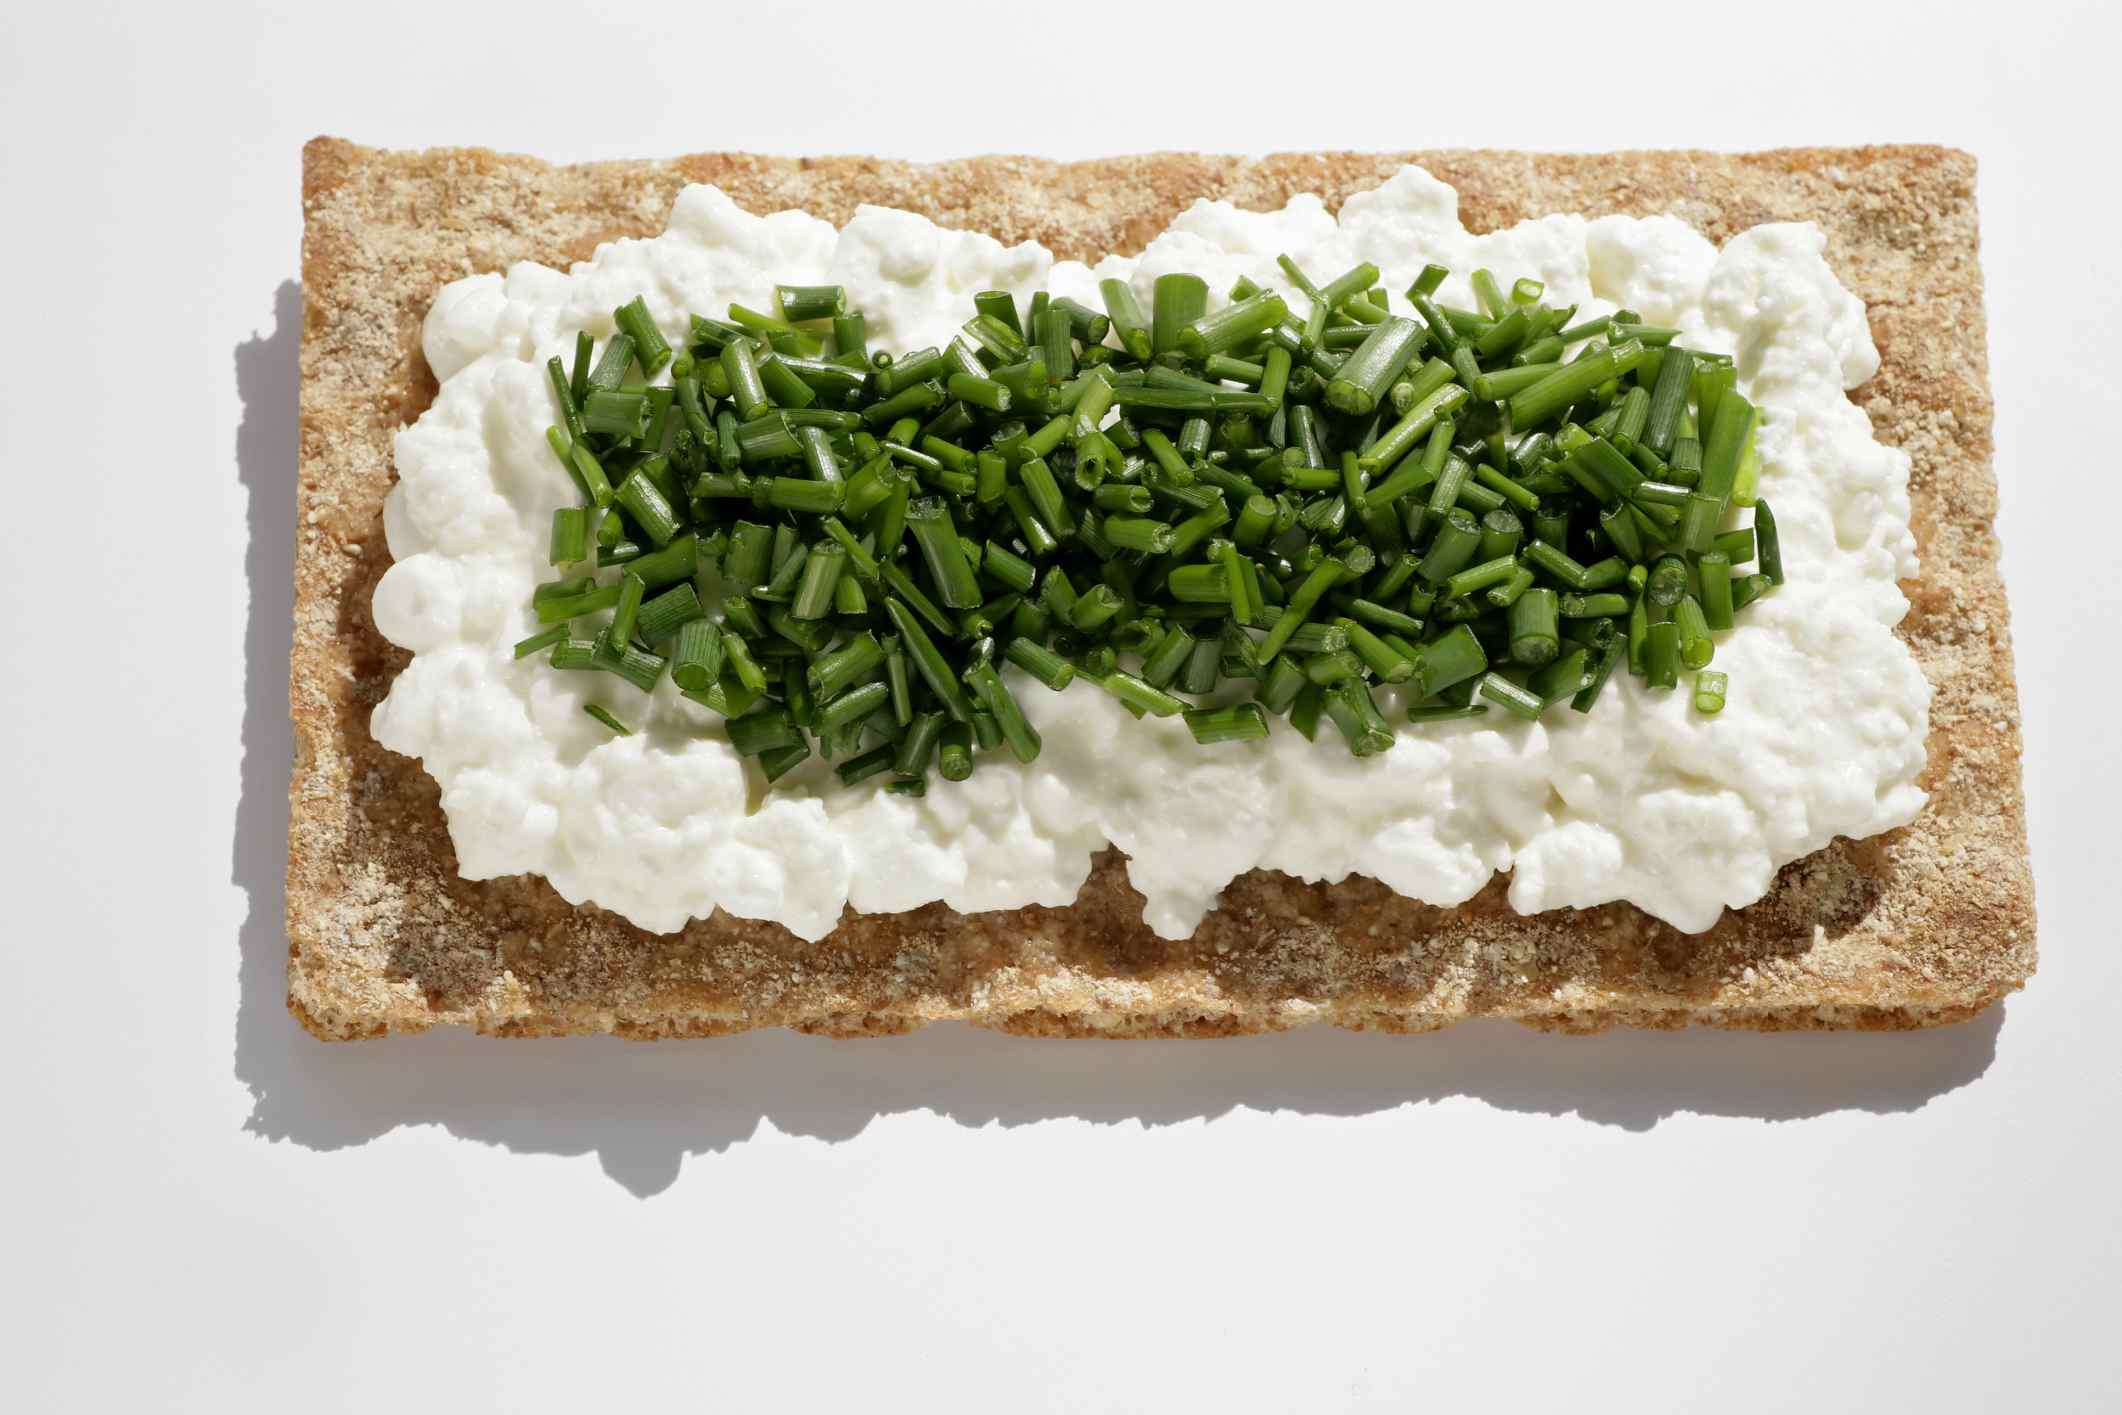 Crispbread, cottage cheese and chives make a healthy snack for work.